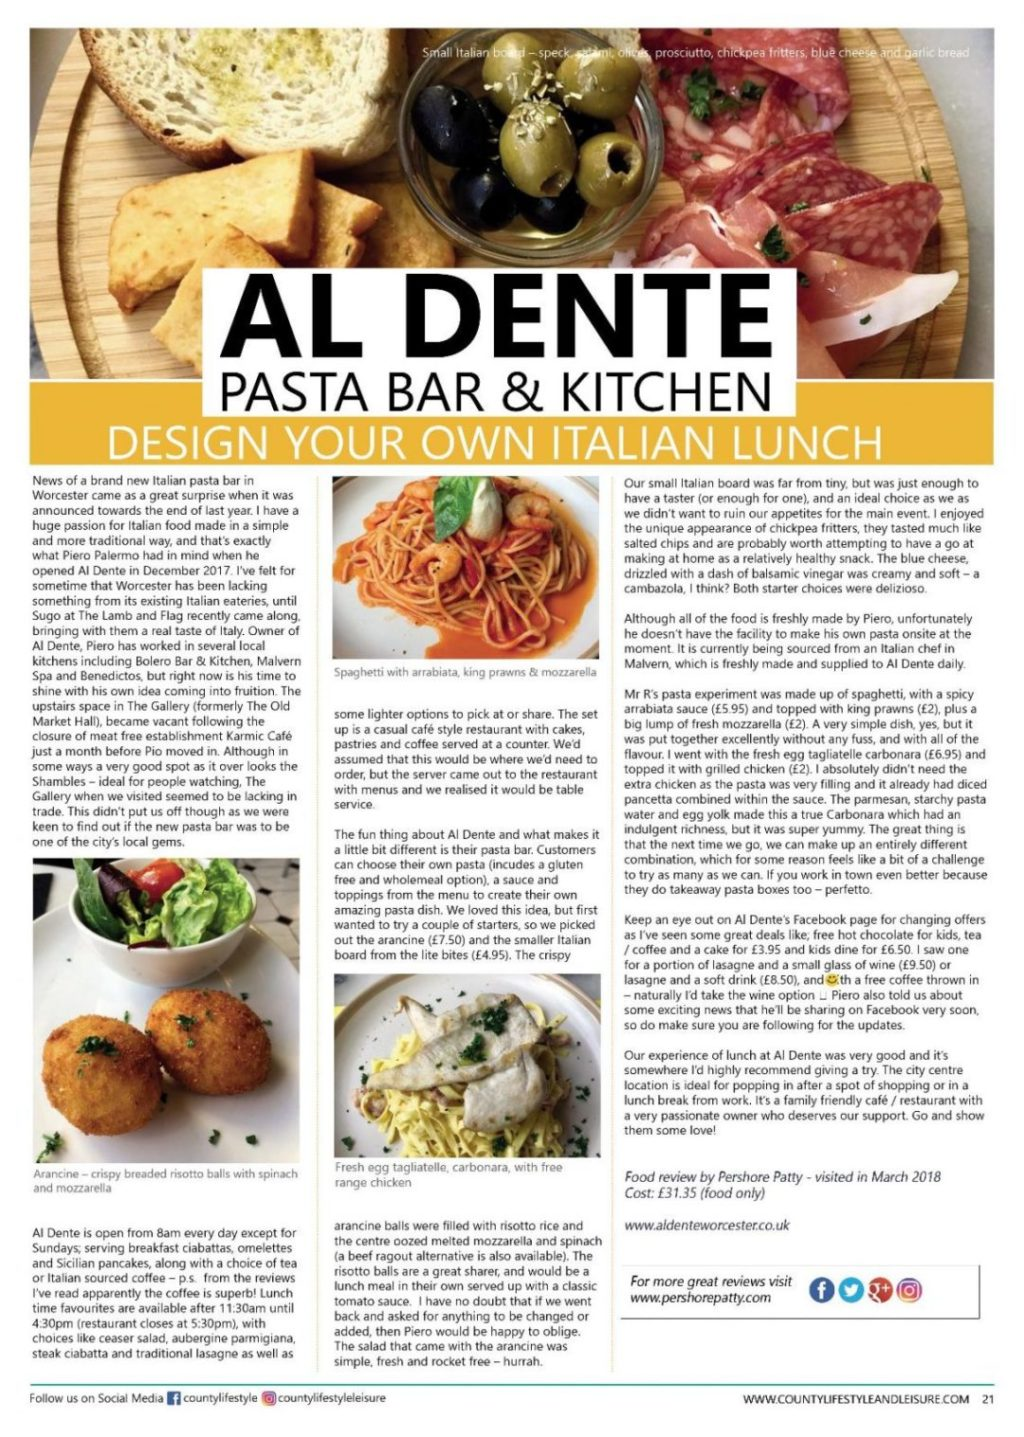 PAGE 21 - Al Dente Review - COUNTY LIFESTYLE MAY 2018 ISSUE-page-001